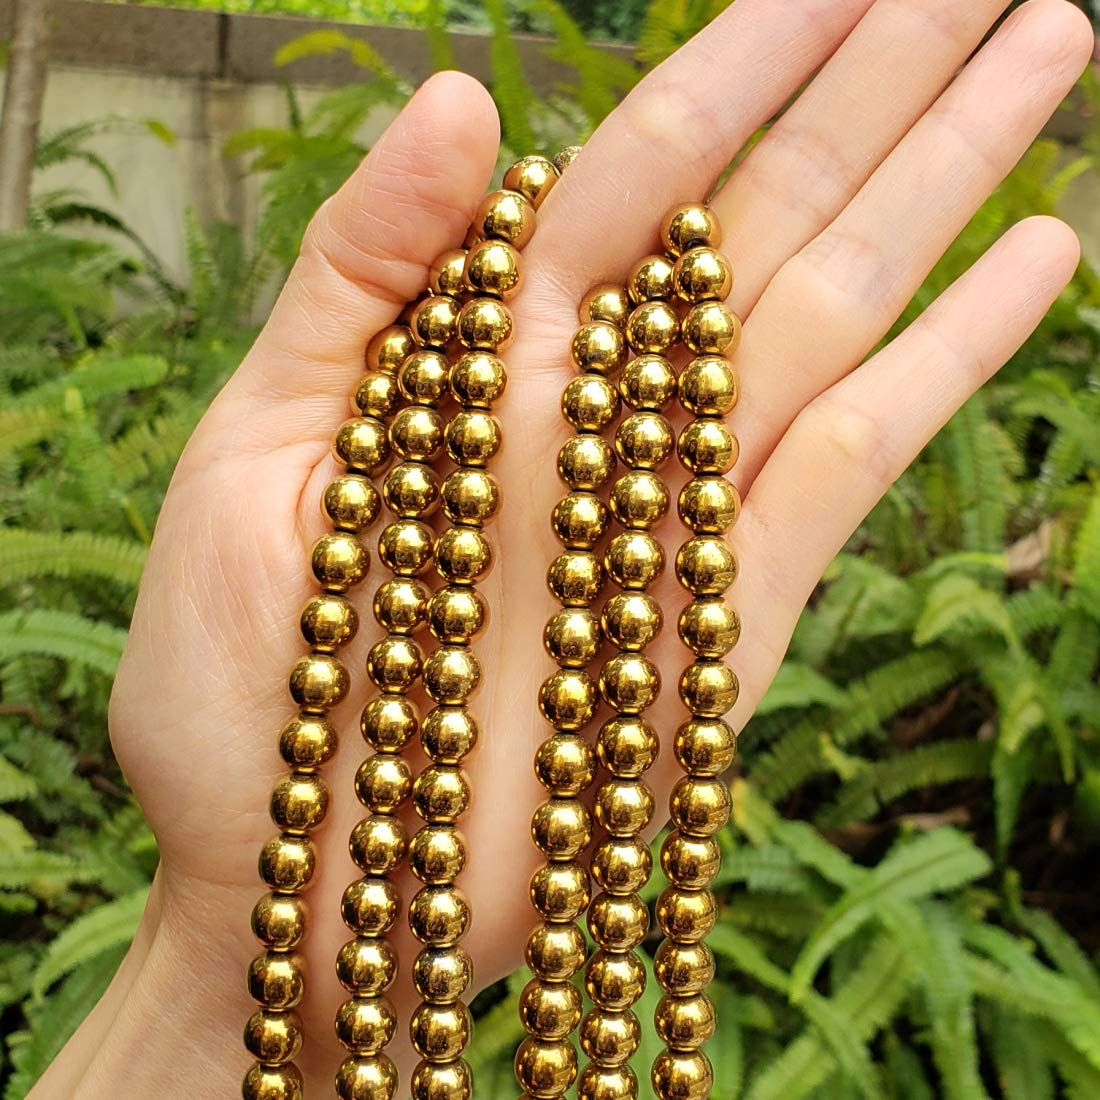 for Jewelry Craft Making GFC3-6 2 strands Top Quality Hematite Gold Plated Gemstone 6mm Round Loose Stone Beads ~ 118-126pcs total